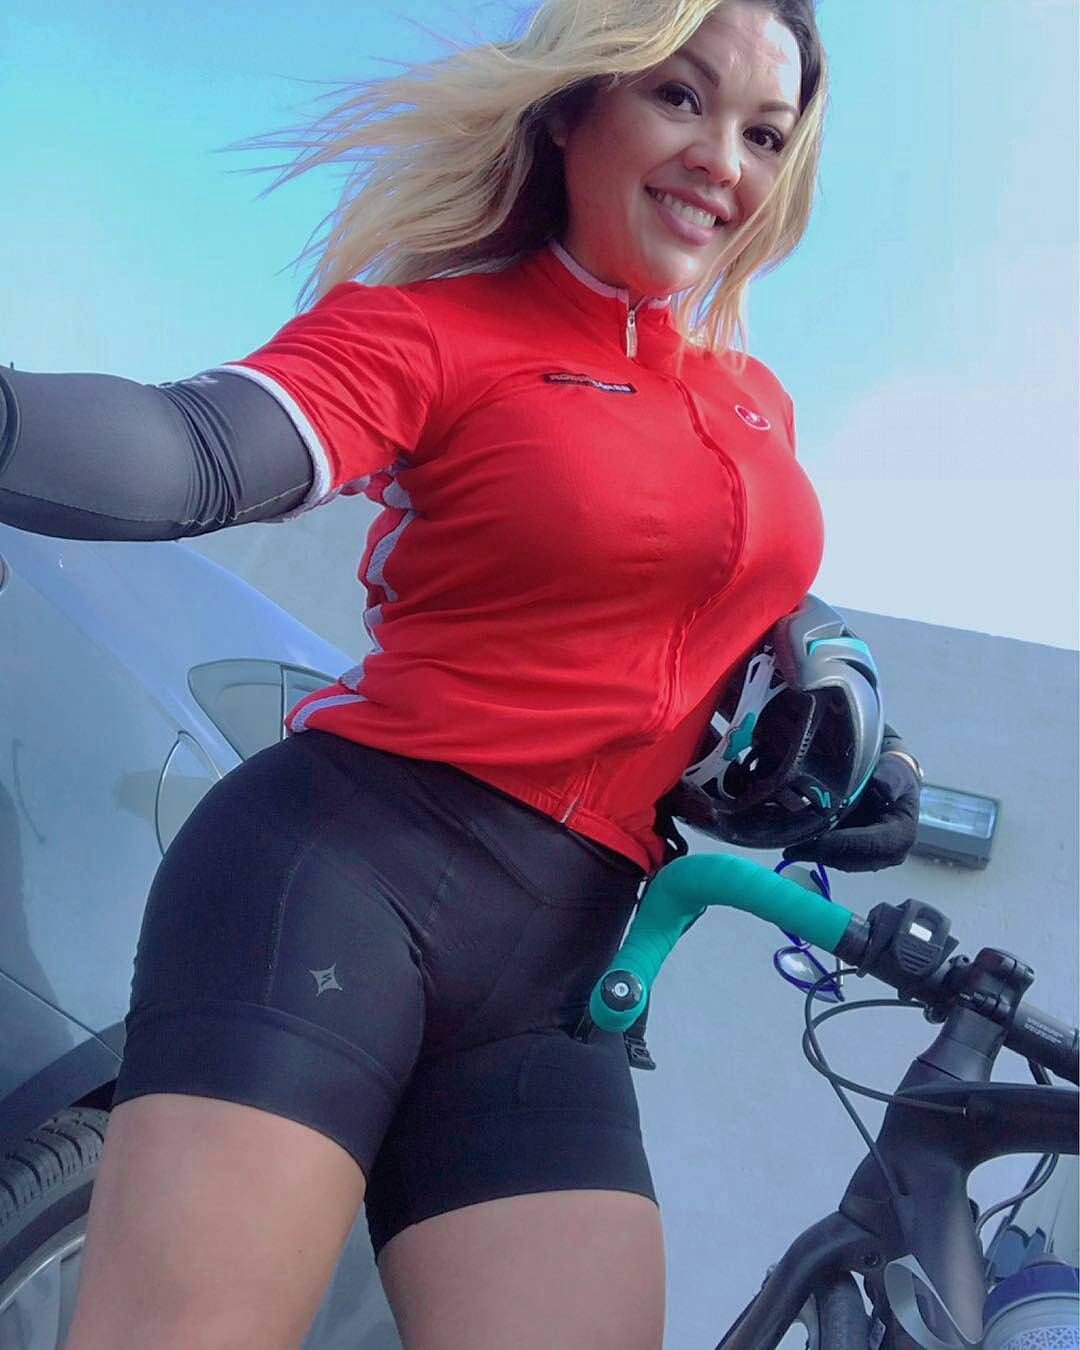 Curves and Lines  Women and Bikes b5fa254cd